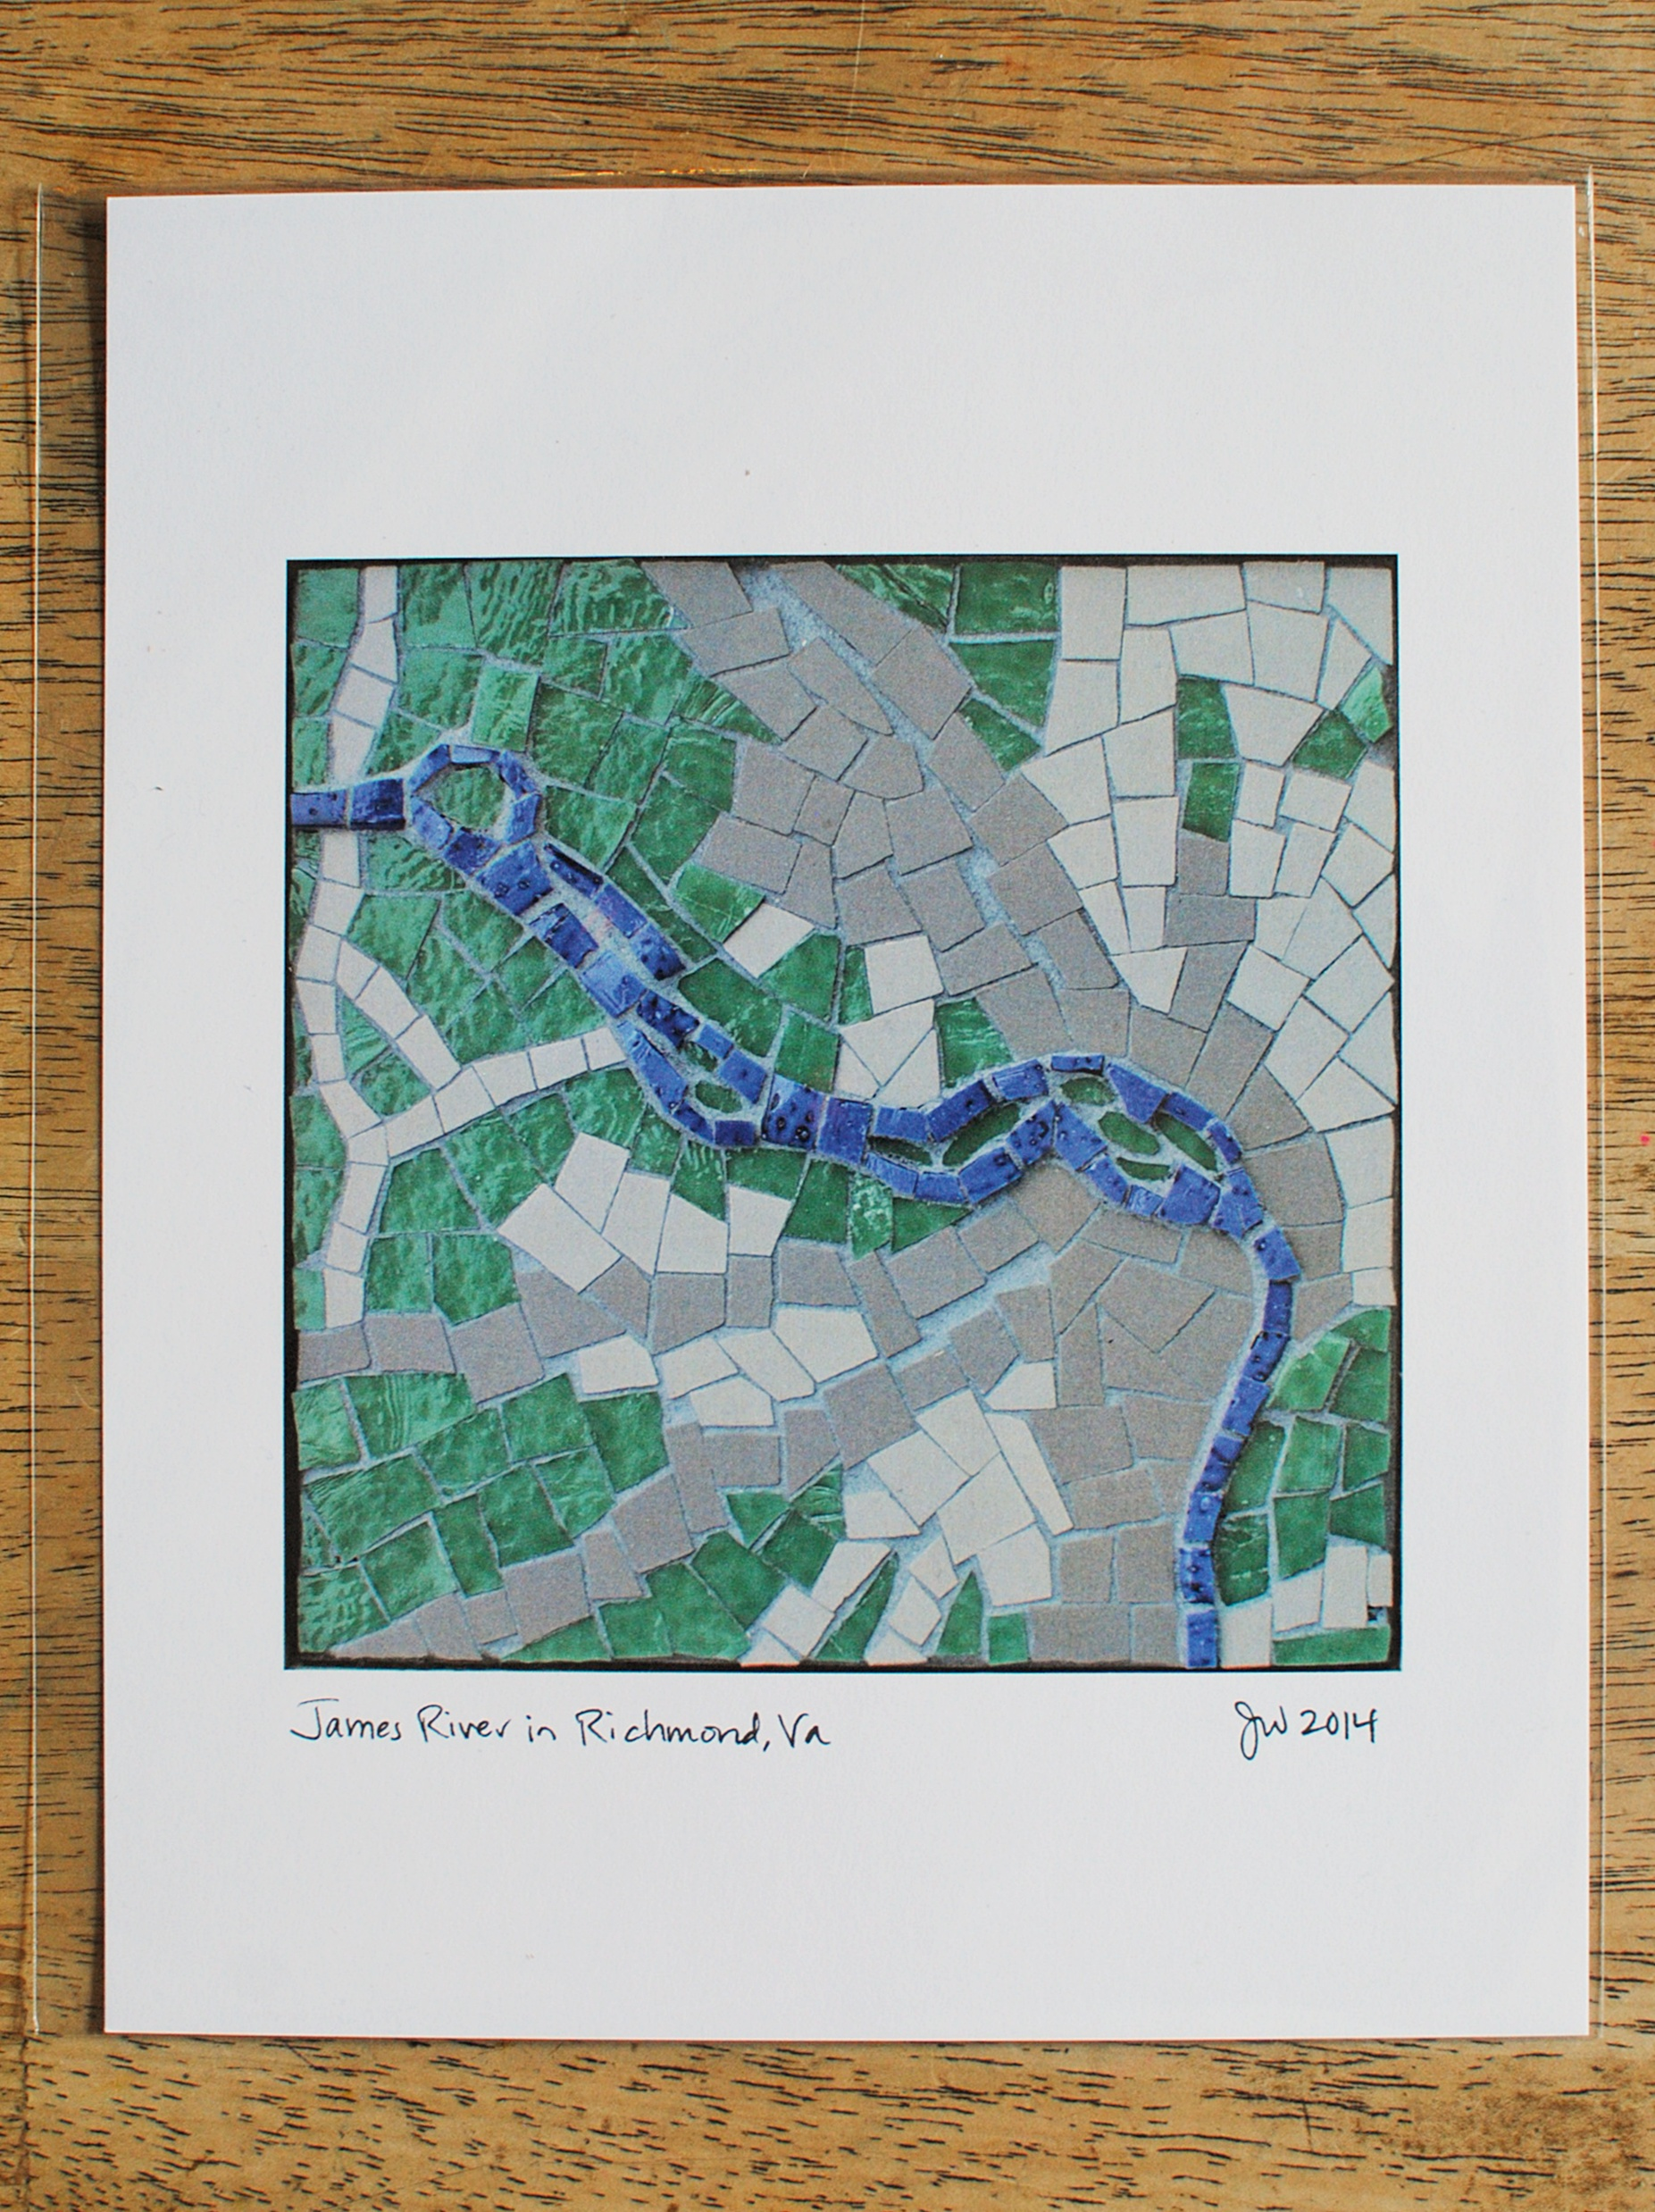 James River in Richmond, Virginia mosaic map print